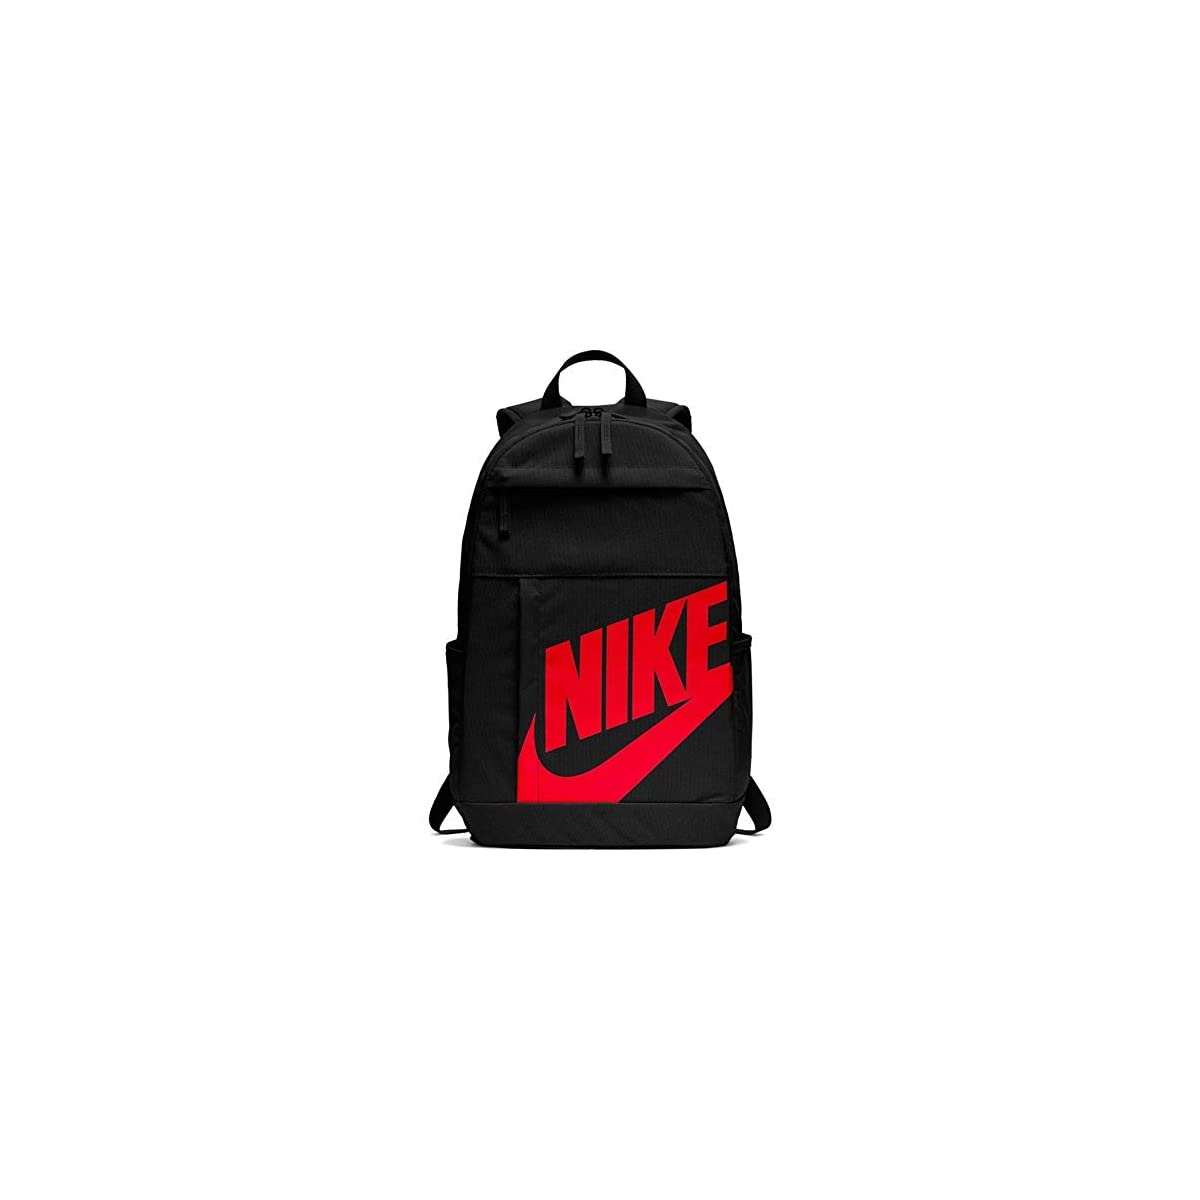 41Or2Y95NRL. SS1200  - Nike Nk Elmntl Bkpk-2.0 Sports Backpack, Unisex Adulto